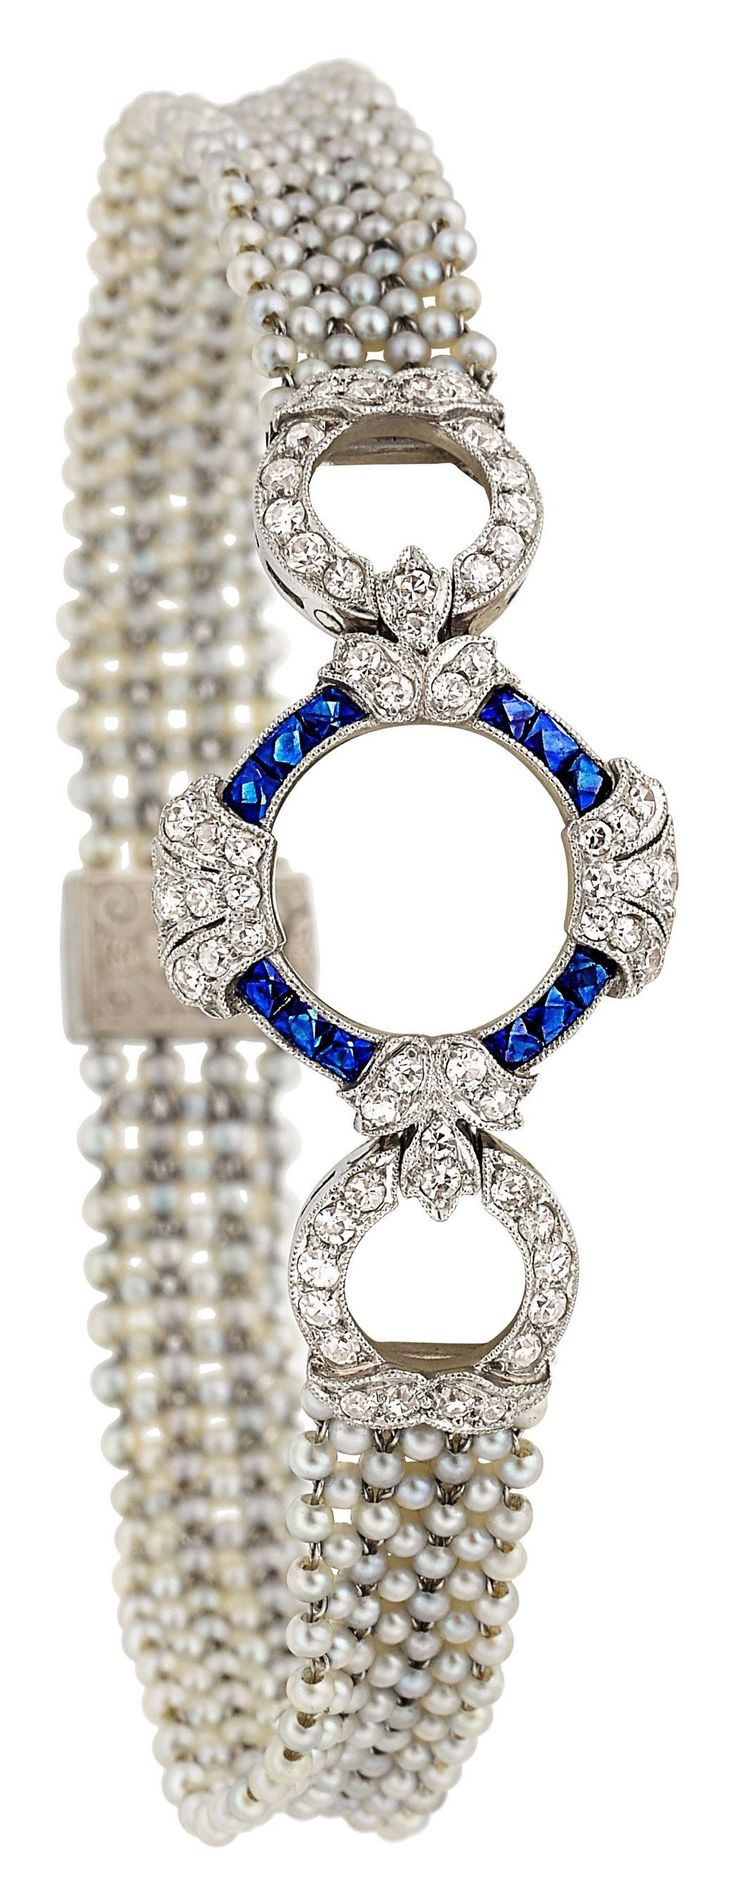 An Art Deco Diamond, Sapphire, Seed Pearl, Platinum Bracelet. Composed of seed pearls, forming seven strands strung along platinum wire, enhanced by full and single-cut diamonds, accented by French-cut sapphires, completed by a platinum clasp featuring full-cut diamonds. #ArtDeco #bracelet